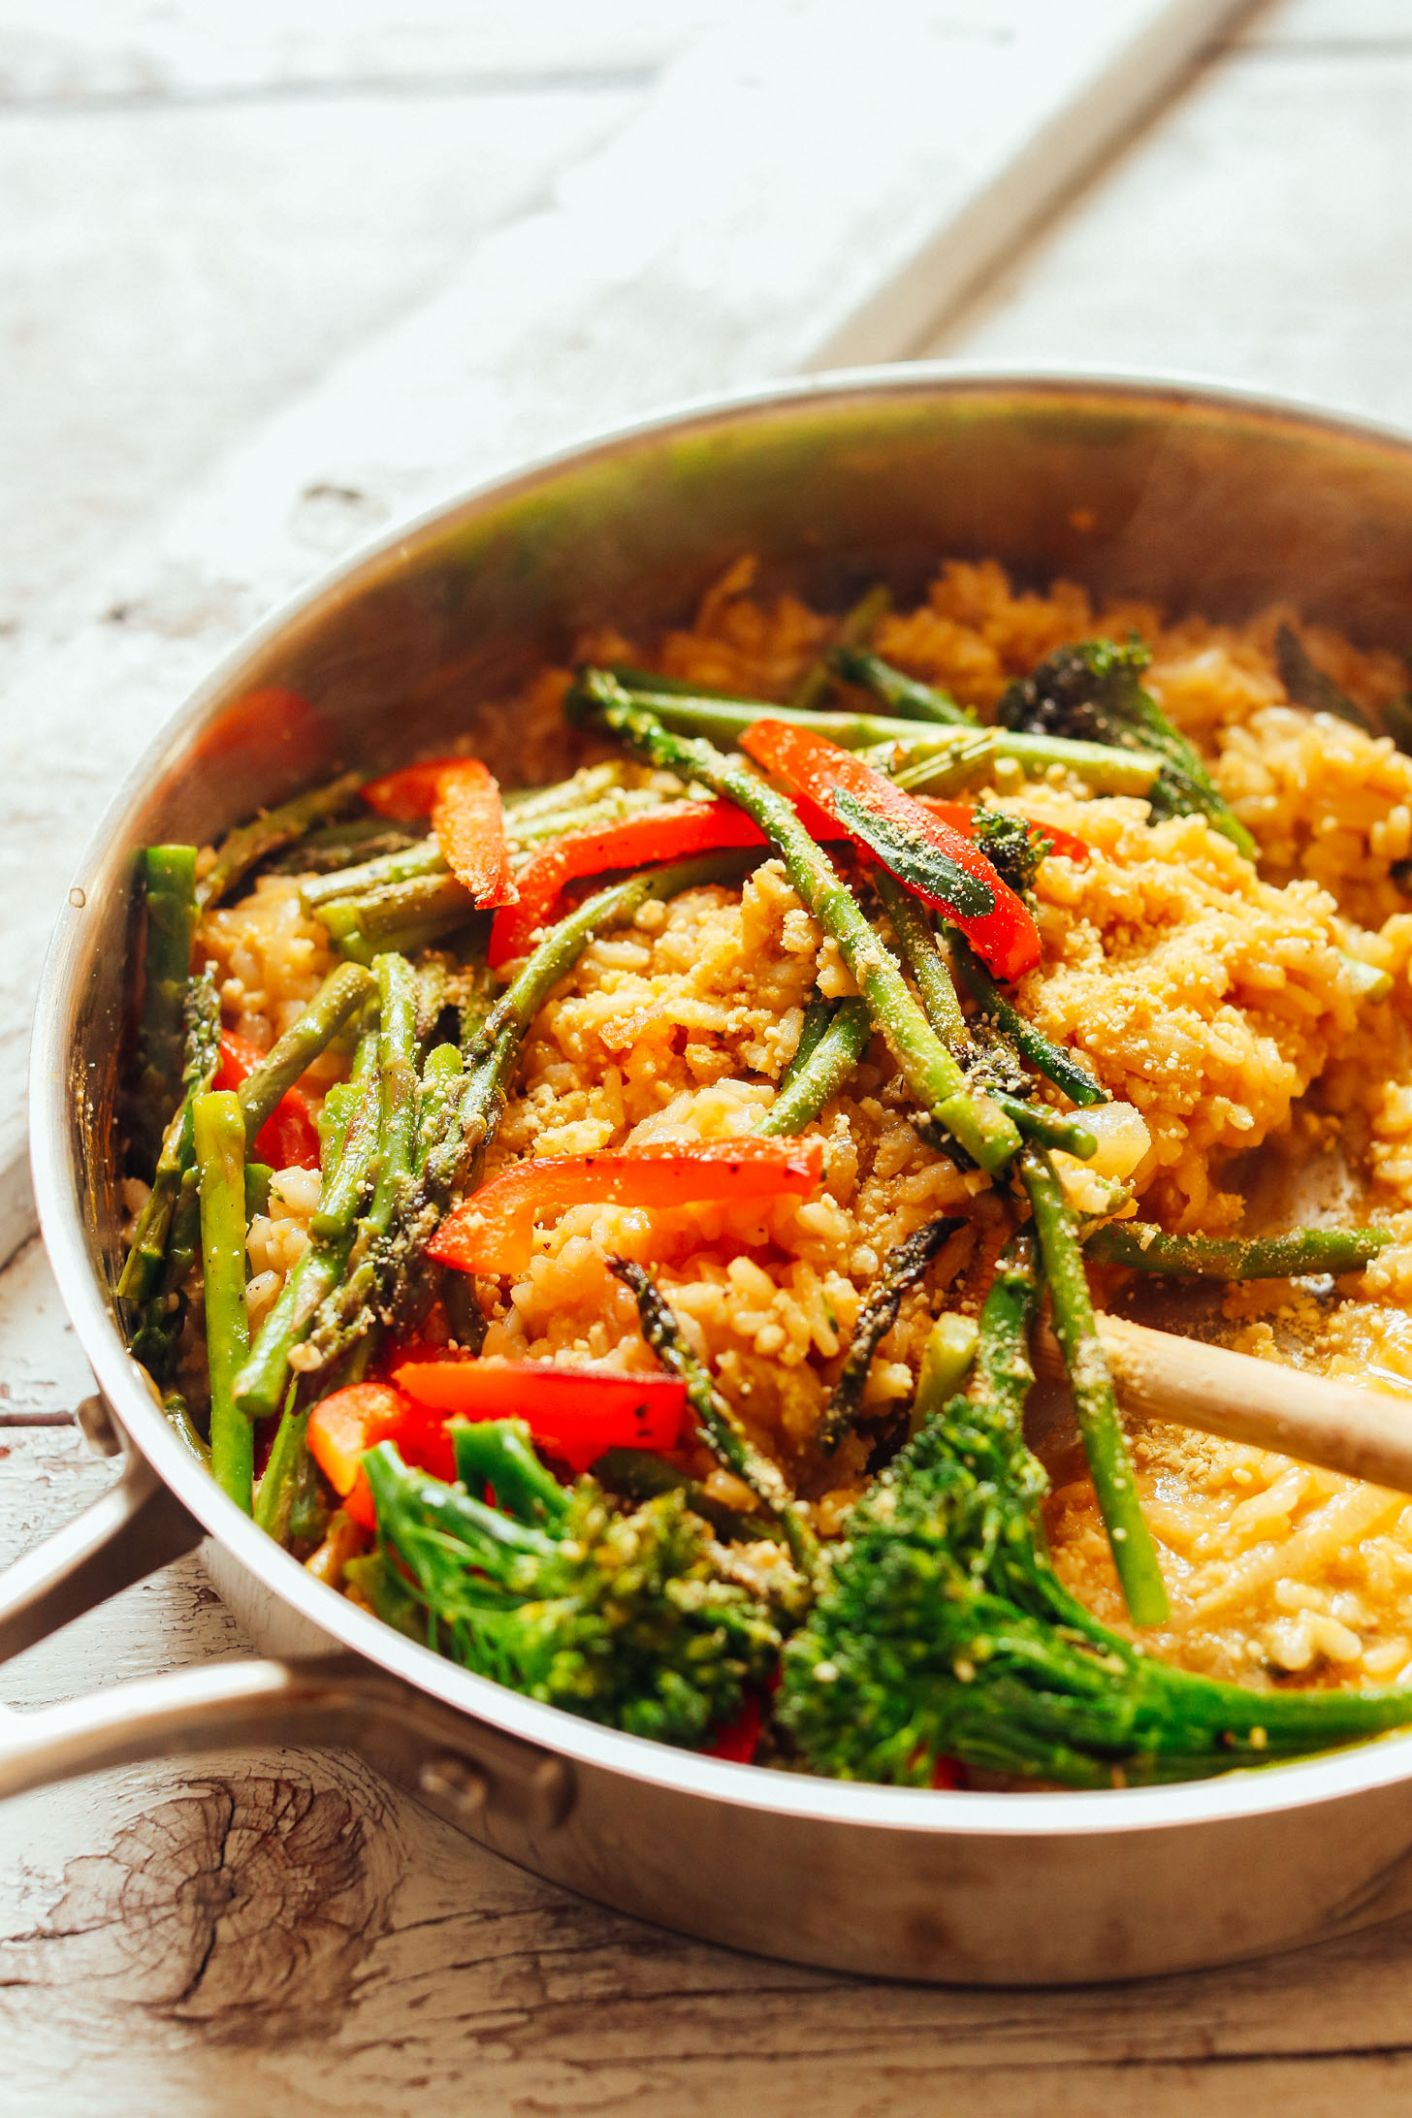 Creamy Vegetable Risotto (12 minutes!) - Recipes For Vegetable Risotto